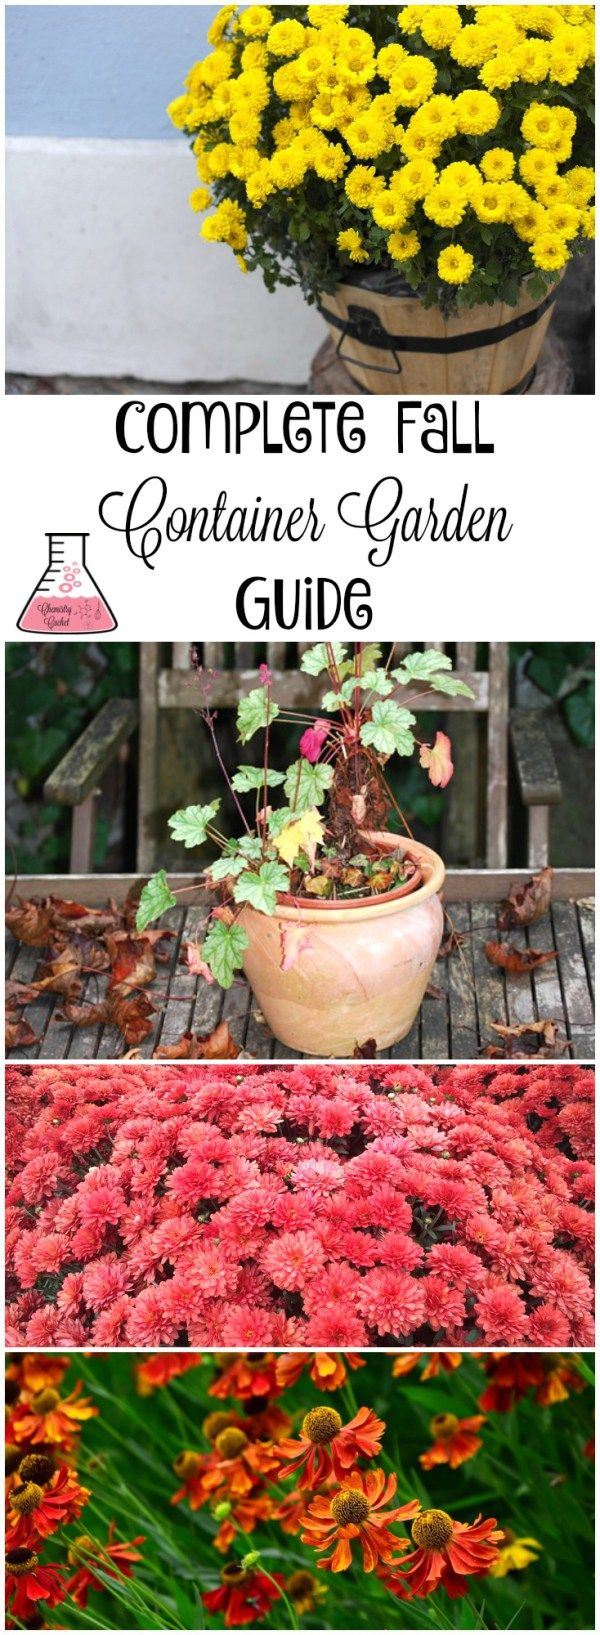 The Complete Fall Container Garden Guide In Three Steps